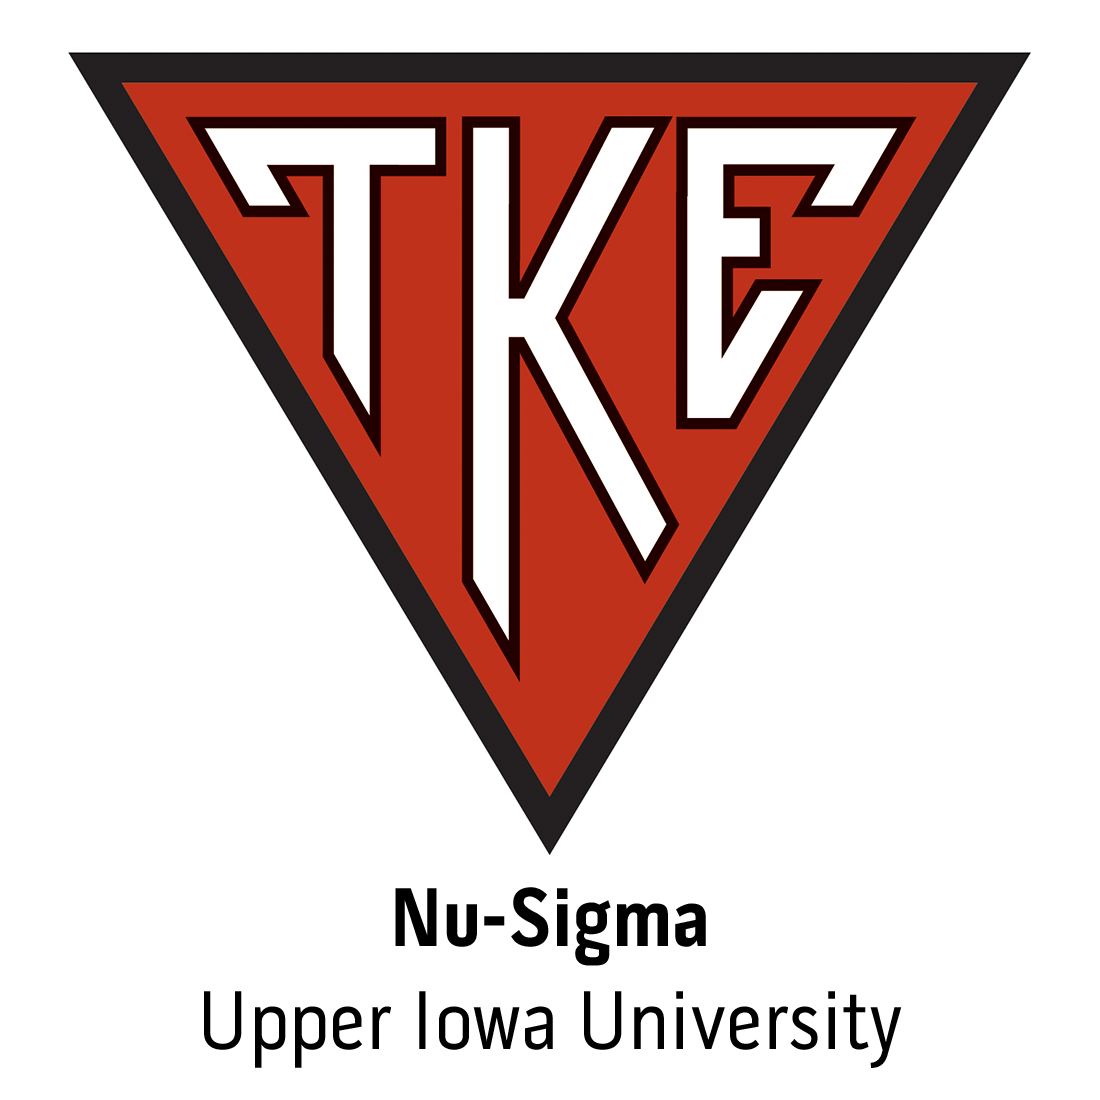 Nu-Sigma Chapter at Upper Iowa University